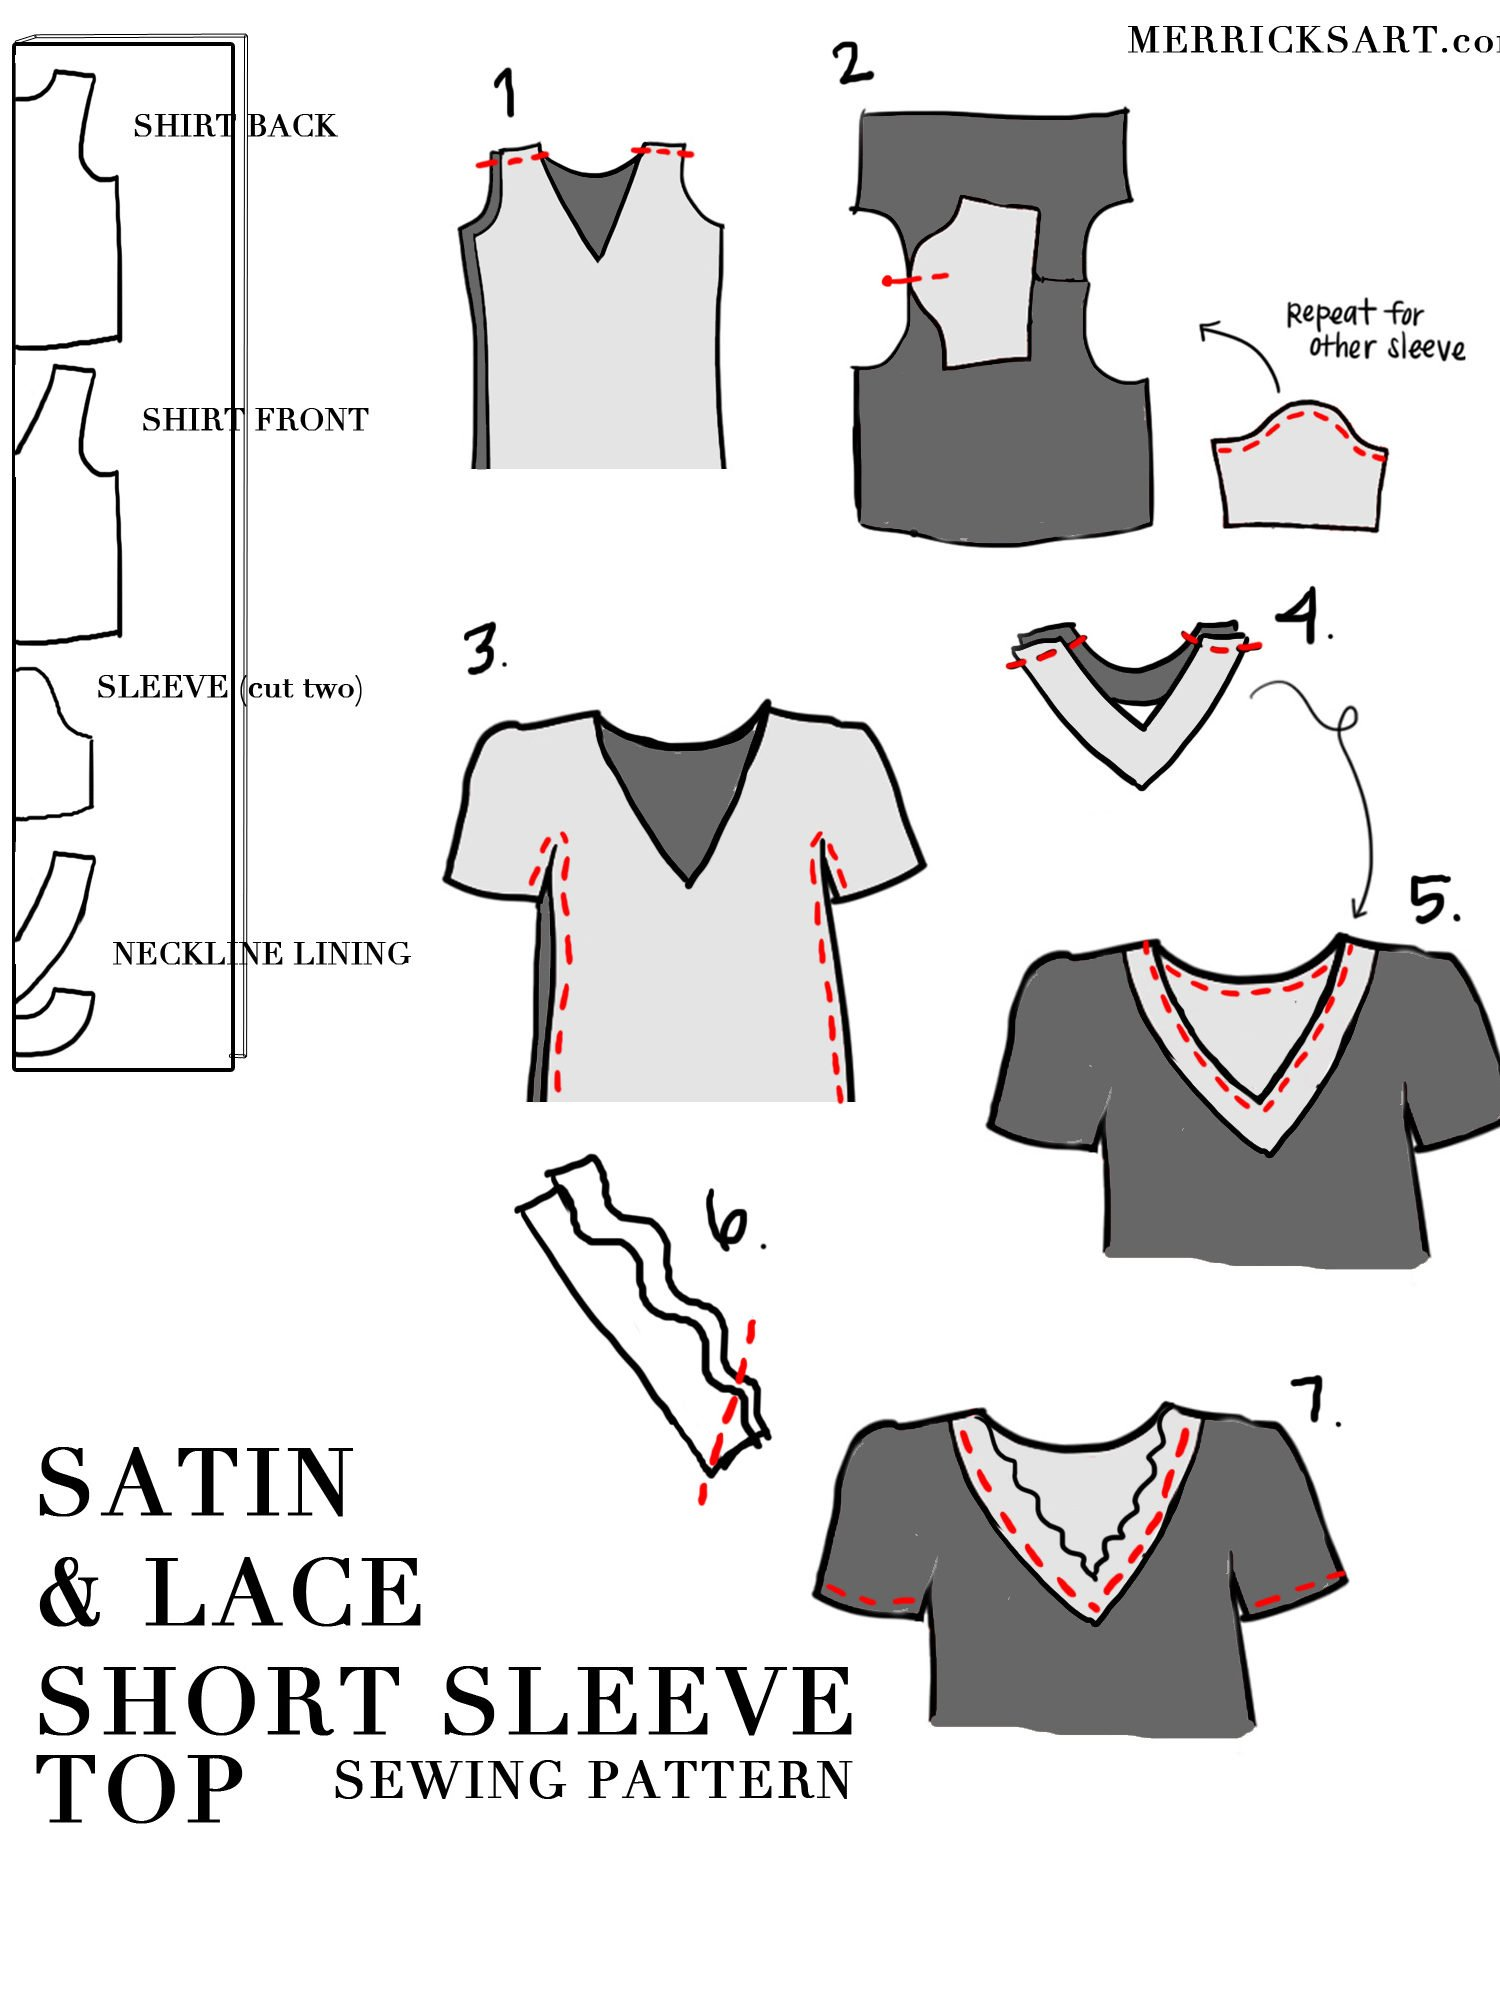 lace satin top sewing pattern